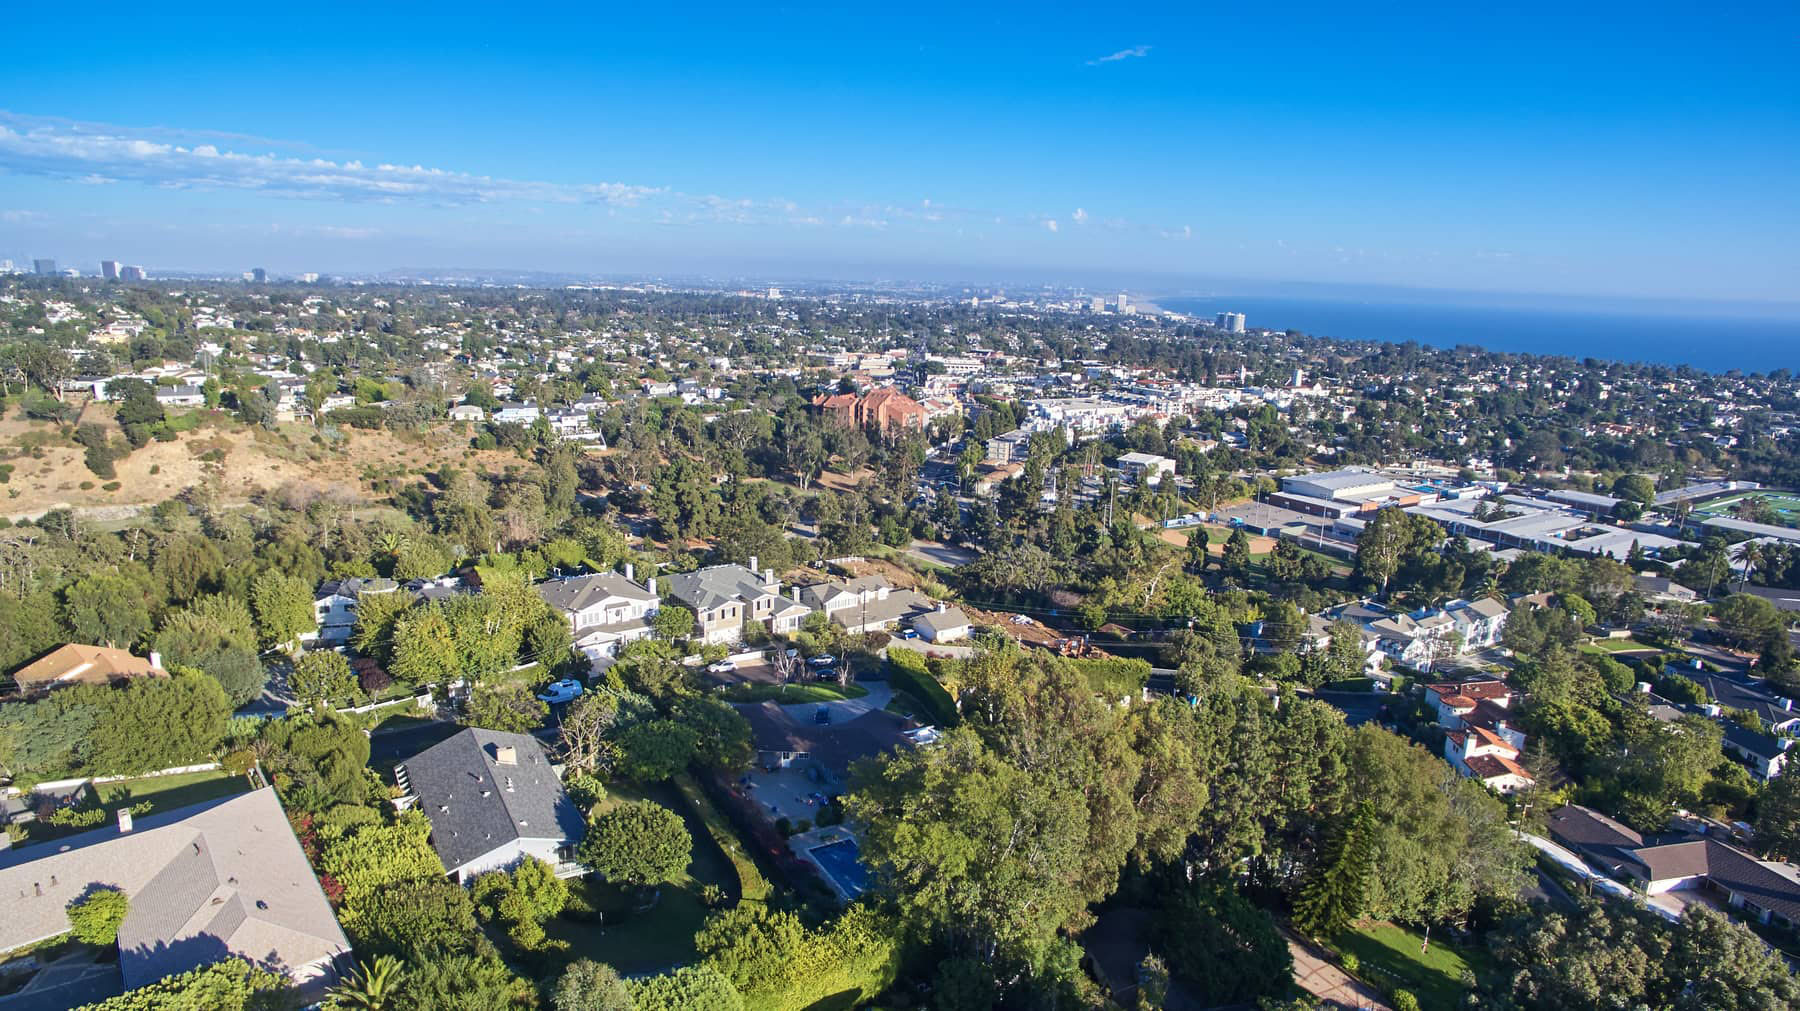 1045 El Medio Ave.,Pacific Palisades,California 90272,3 Bedrooms Bedrooms,2.5 BathroomsBathrooms,Home,El Medio Ave.,1039